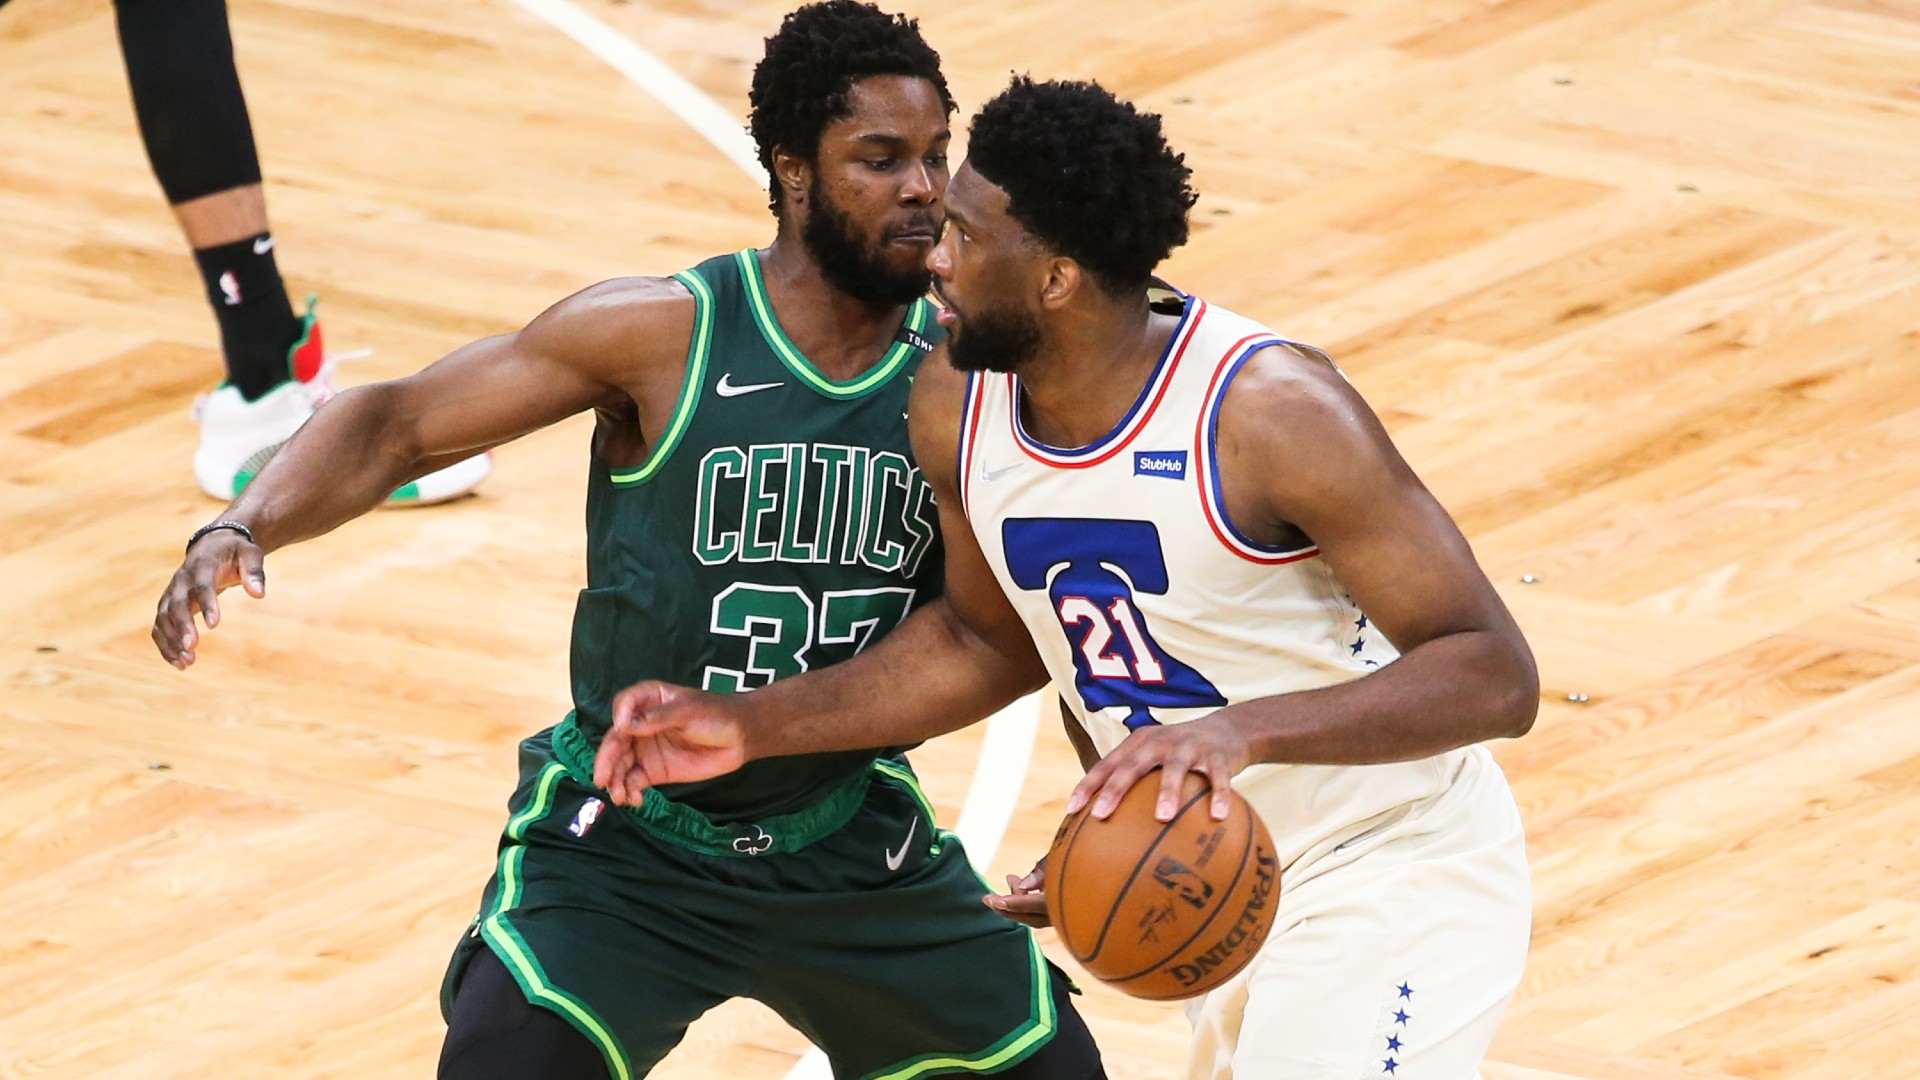 Philadelphia 76ers All-Star Joel Embiid was too hot to handle in Boston, while Stephen Curry fuelled the Golden State Warriors.